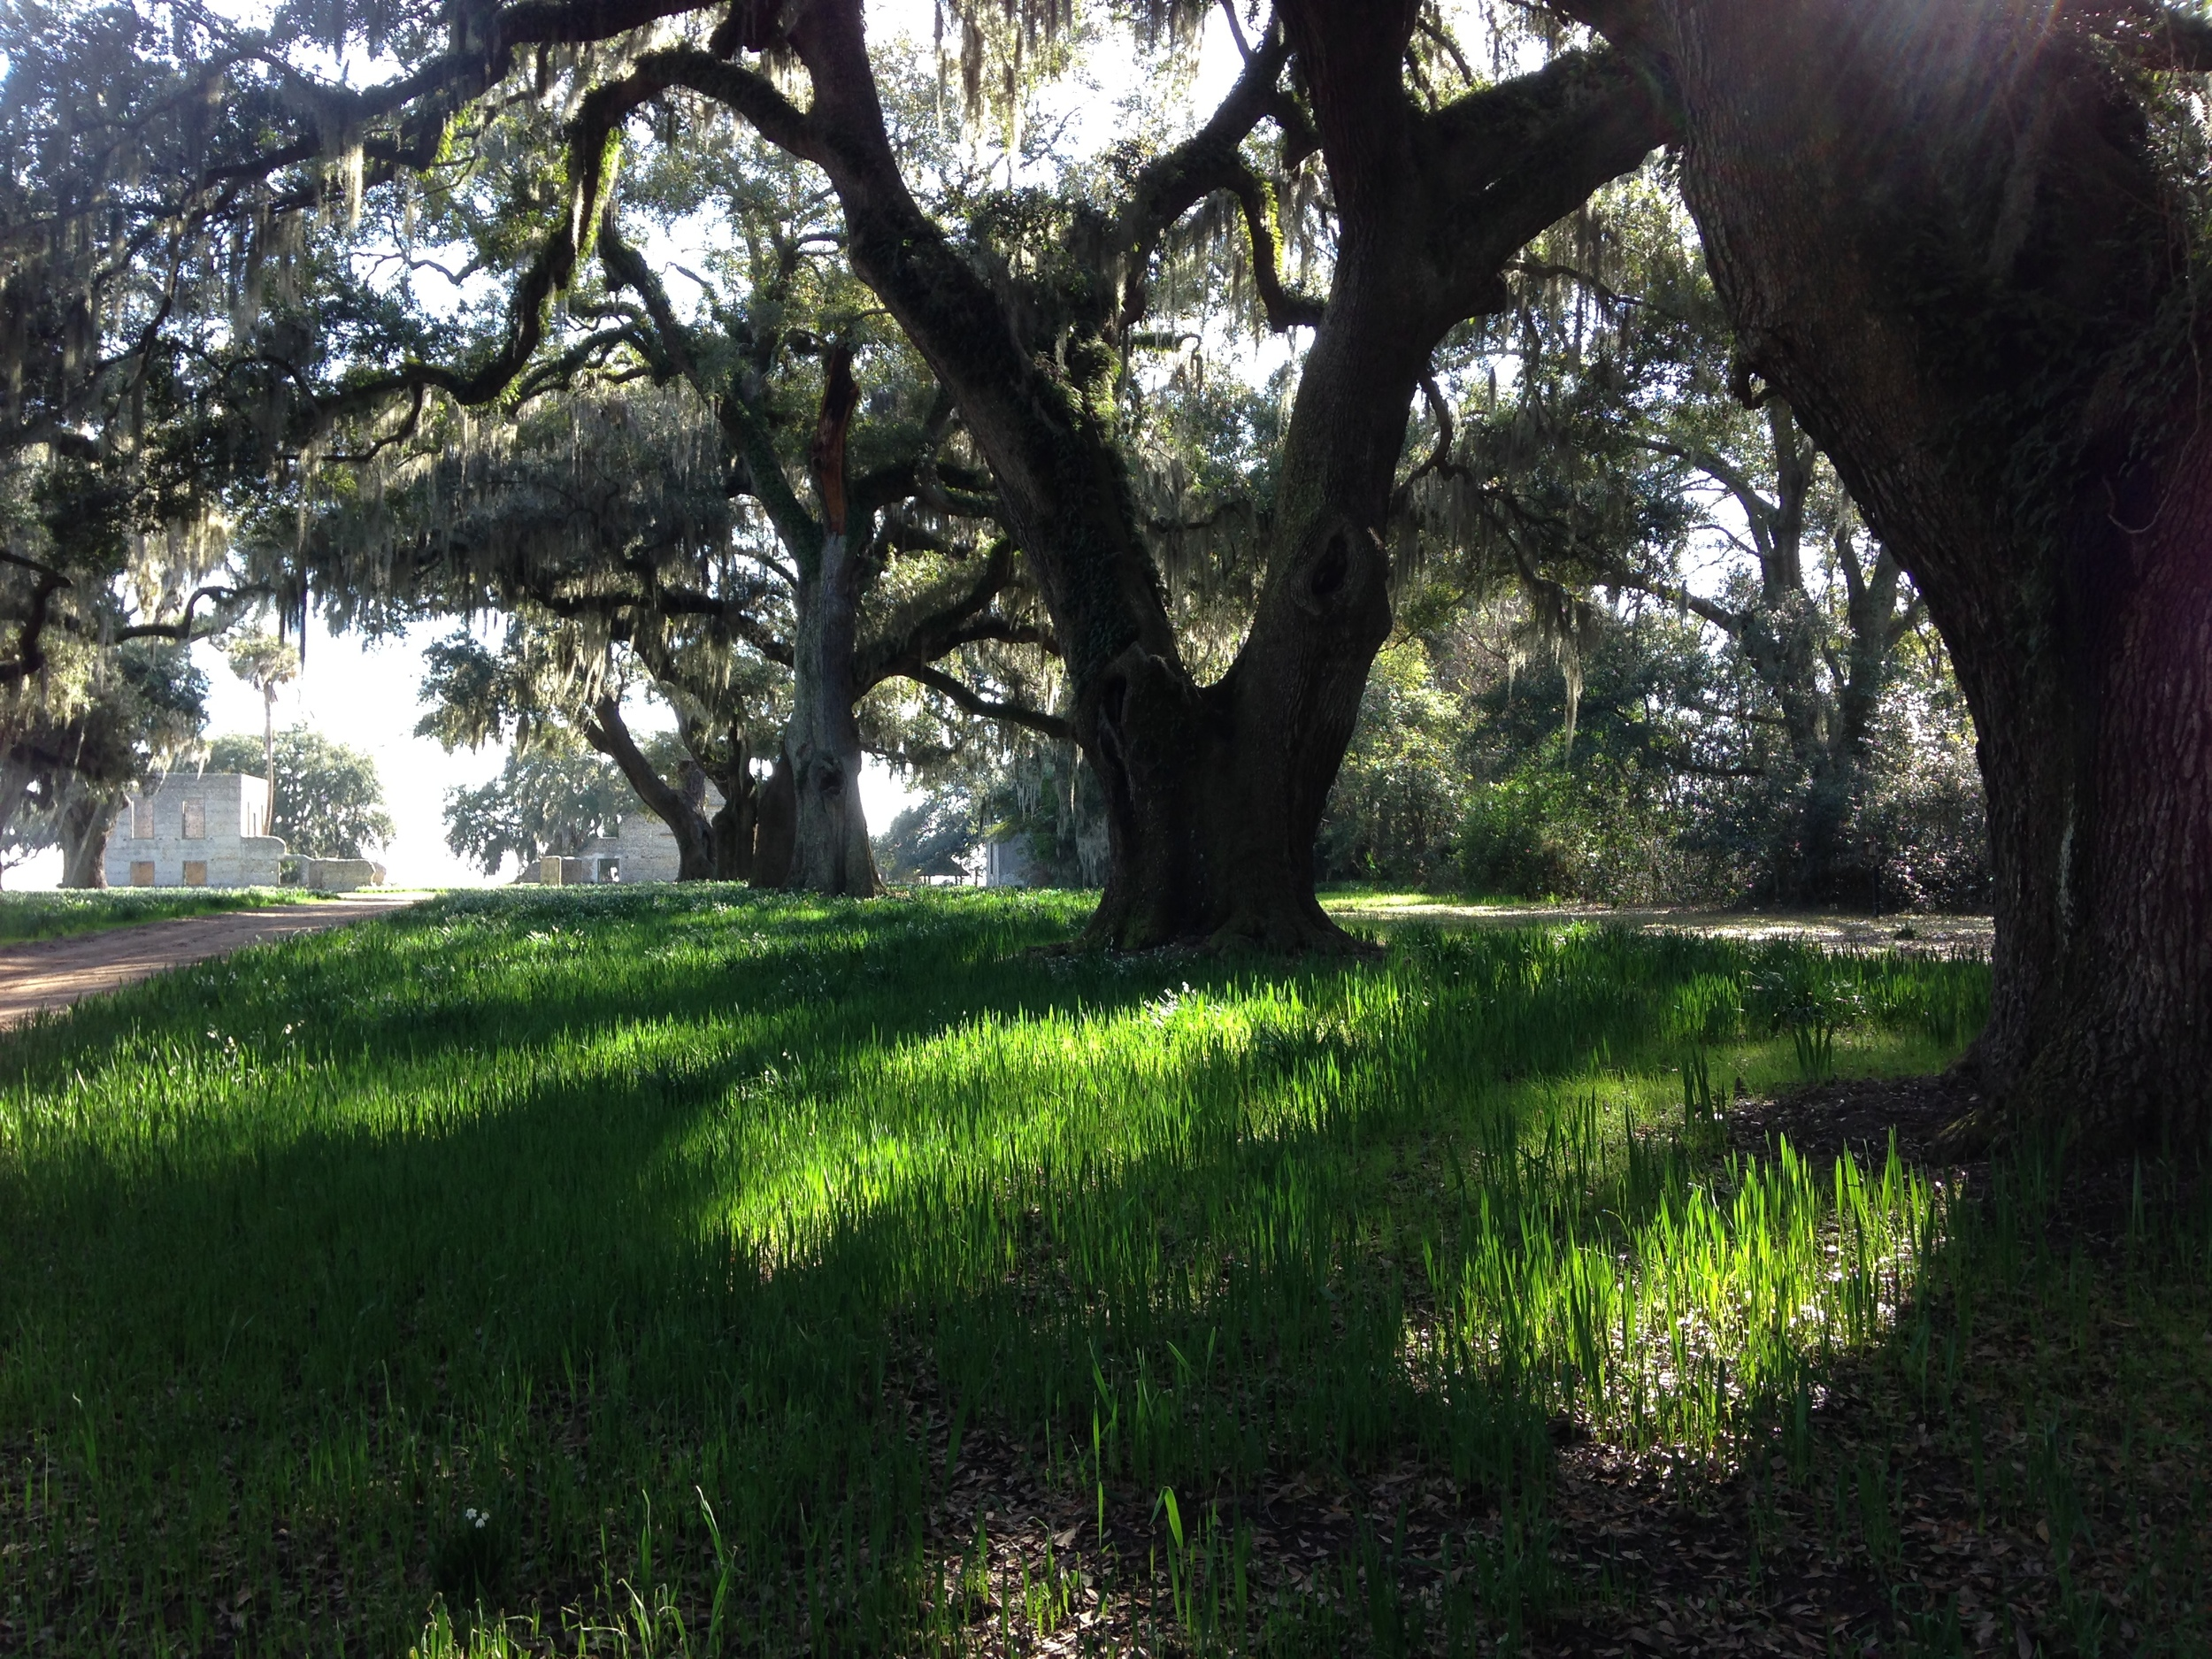 Avenue of Oaks leading down to the historic ruins of a once thriving plantation, perhaps the symbol of the merging ofpast and present on Spring Island.